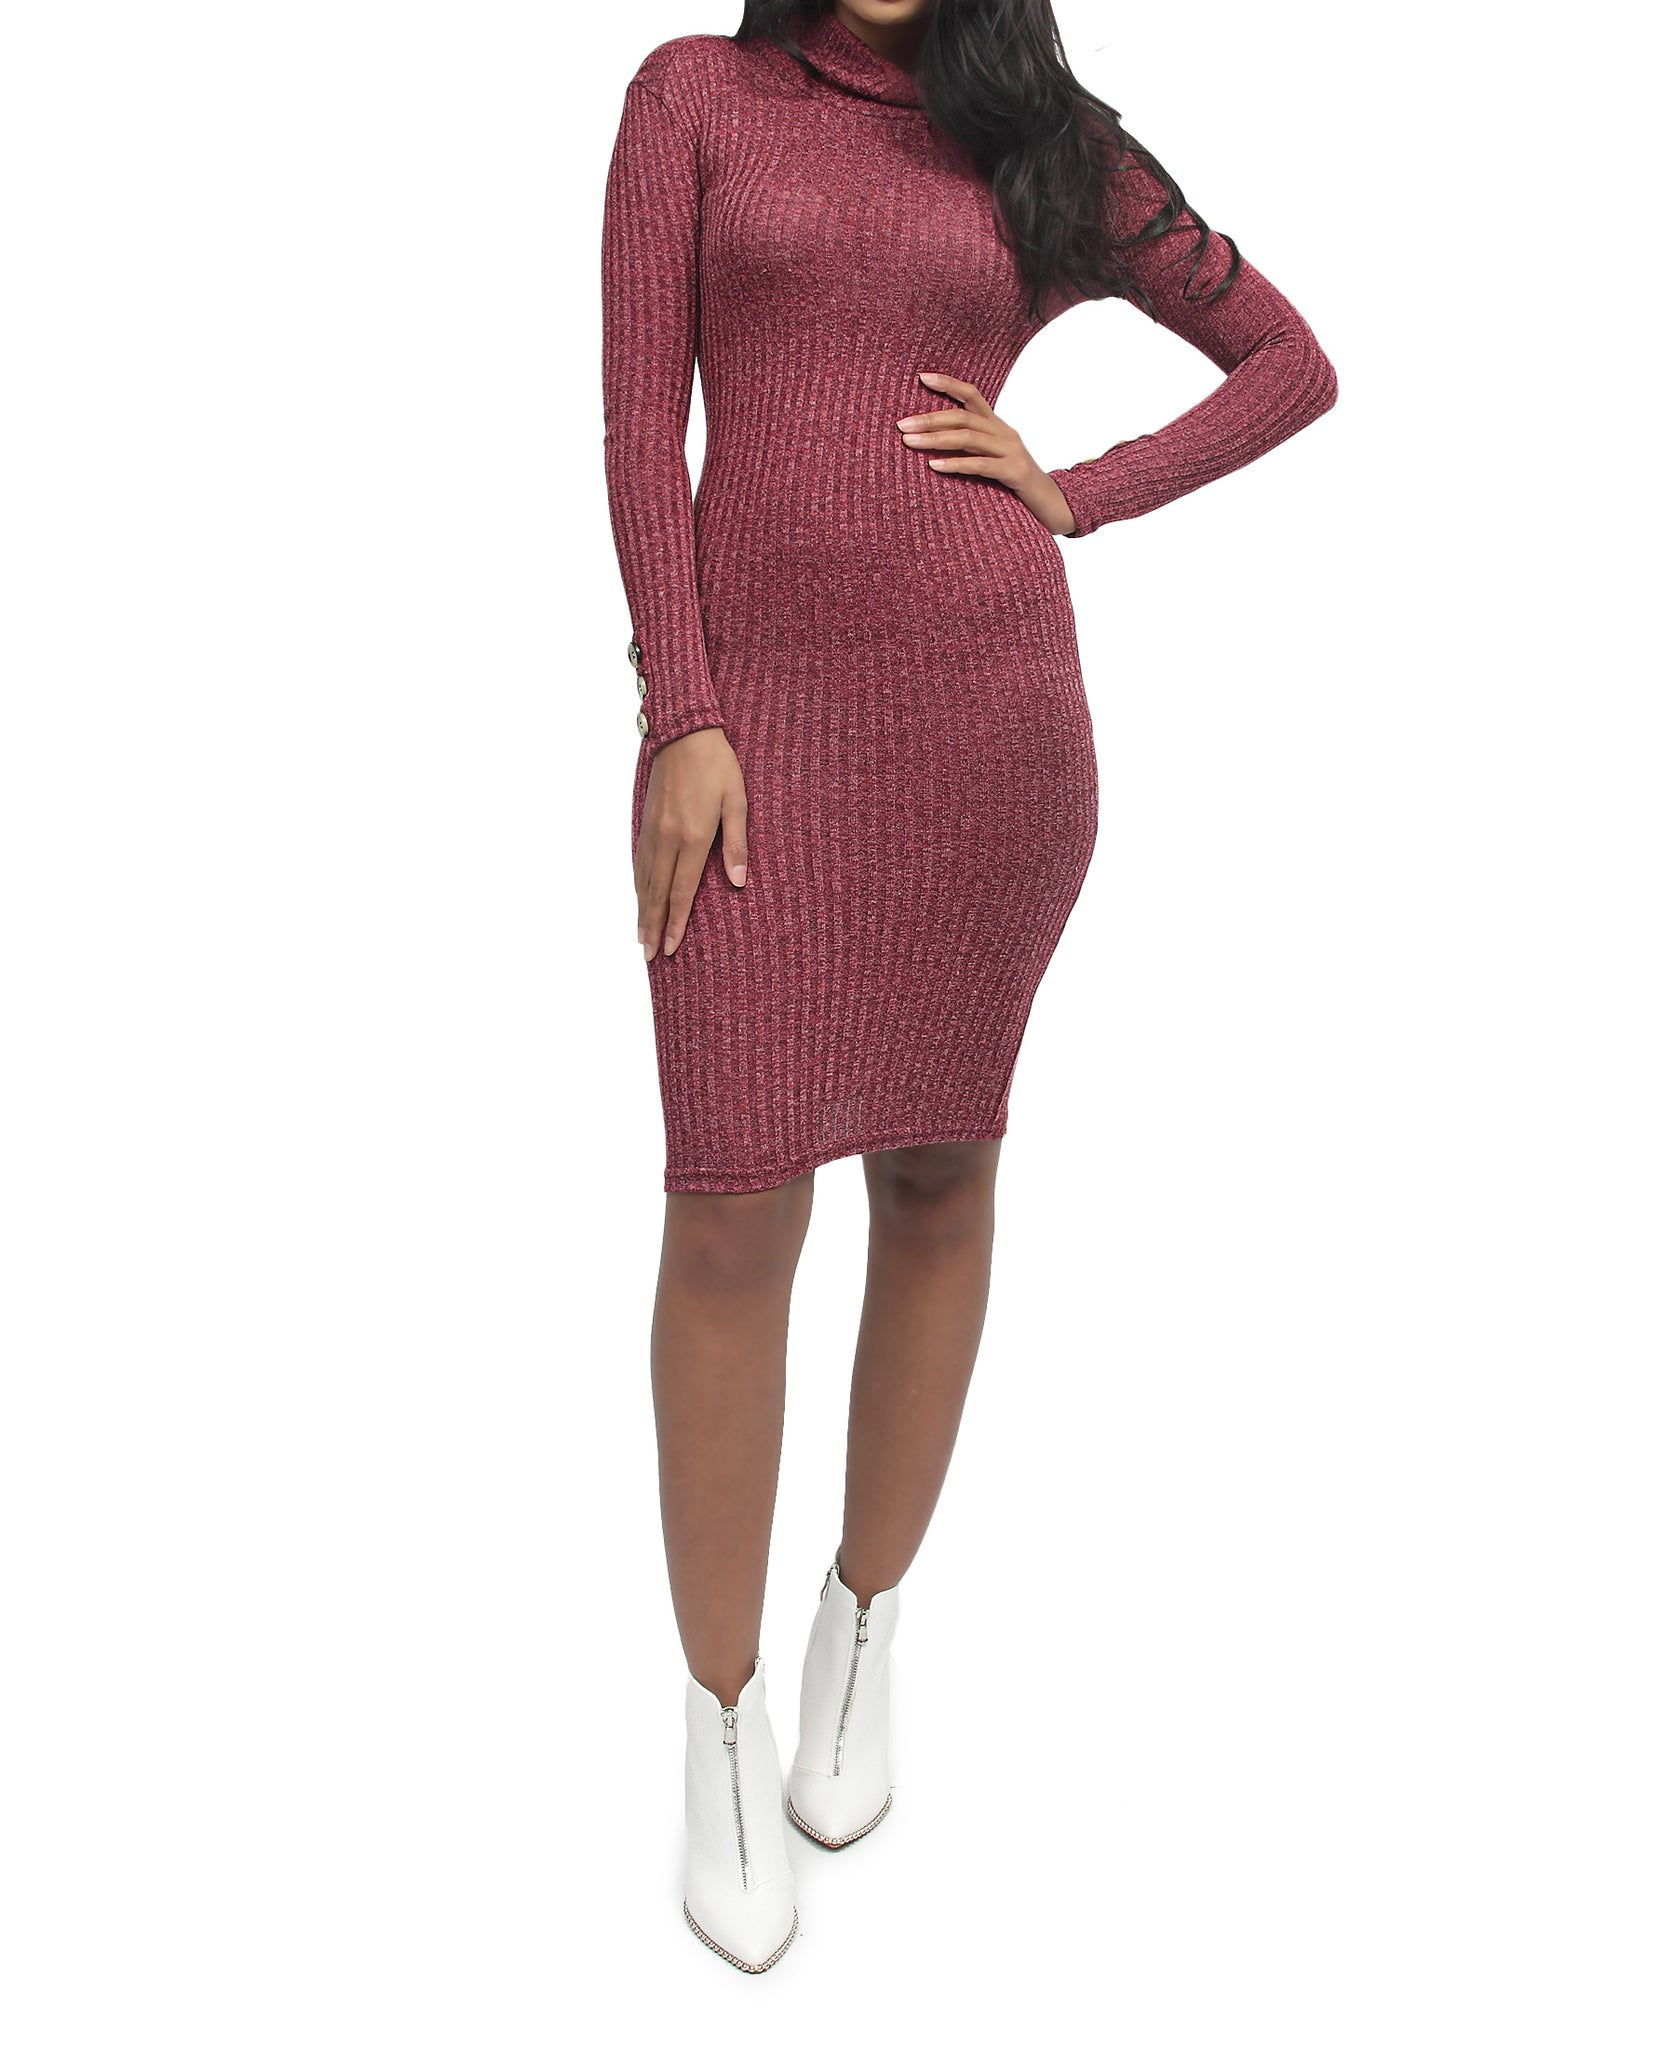 Rib Bodycon Dress - Burgundy